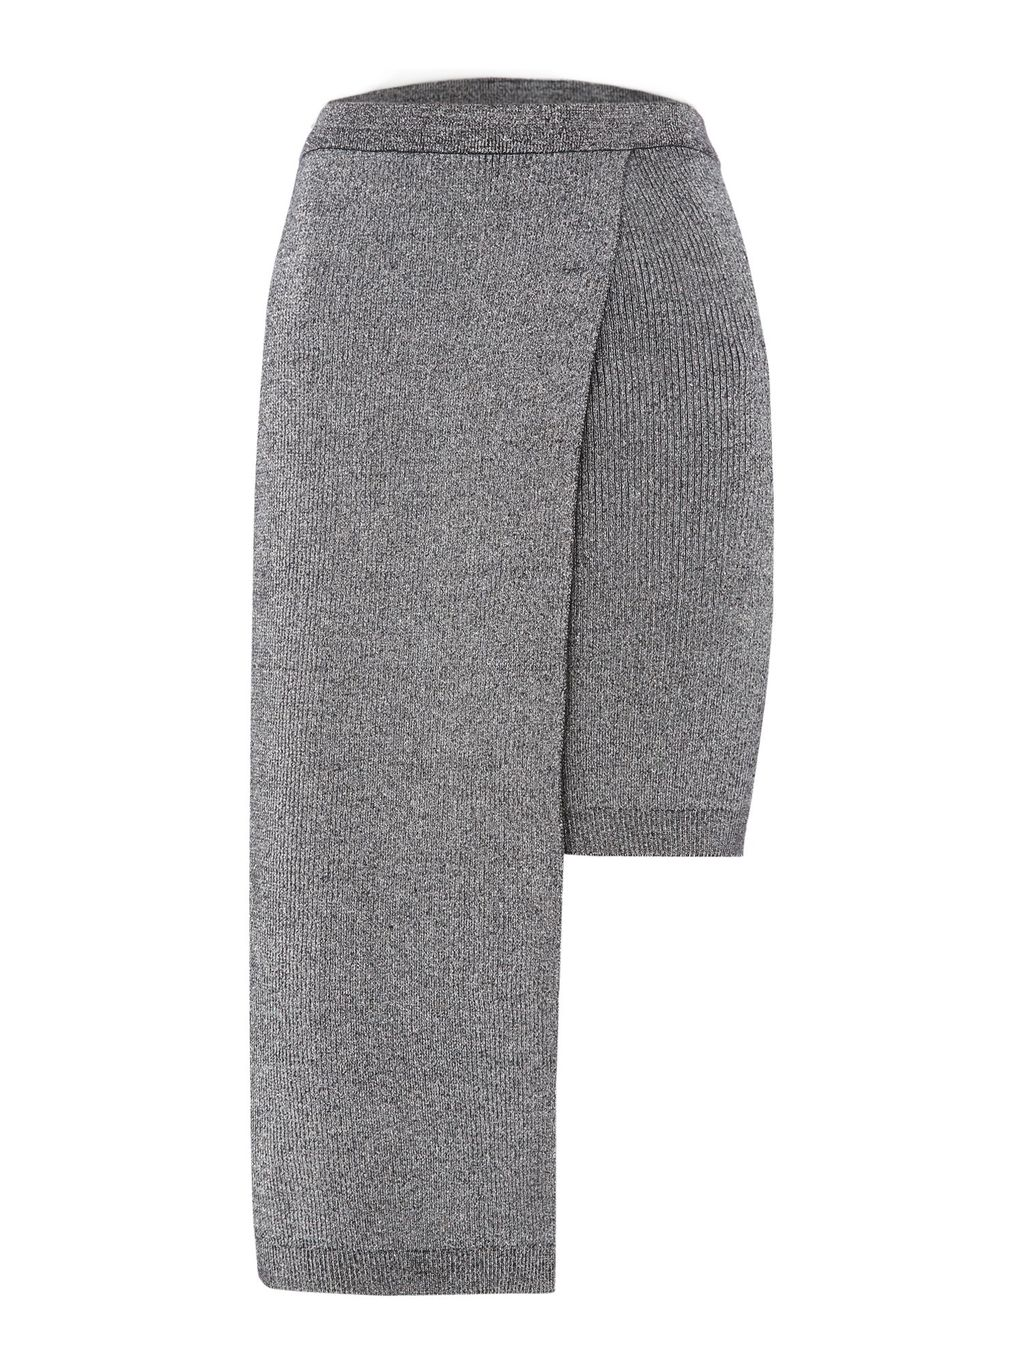 Midi Bodycon Skirt, Silver - pattern: plain; fit: tight; waist: high rise; predominant colour: silver; occasions: evening, creative work; length: just above the knee; style: asymmetric (hem); pattern type: fabric; texture group: woven light midweight; fibres: viscose/rayon - mix; season: a/w 2016; wardrobe: highlight